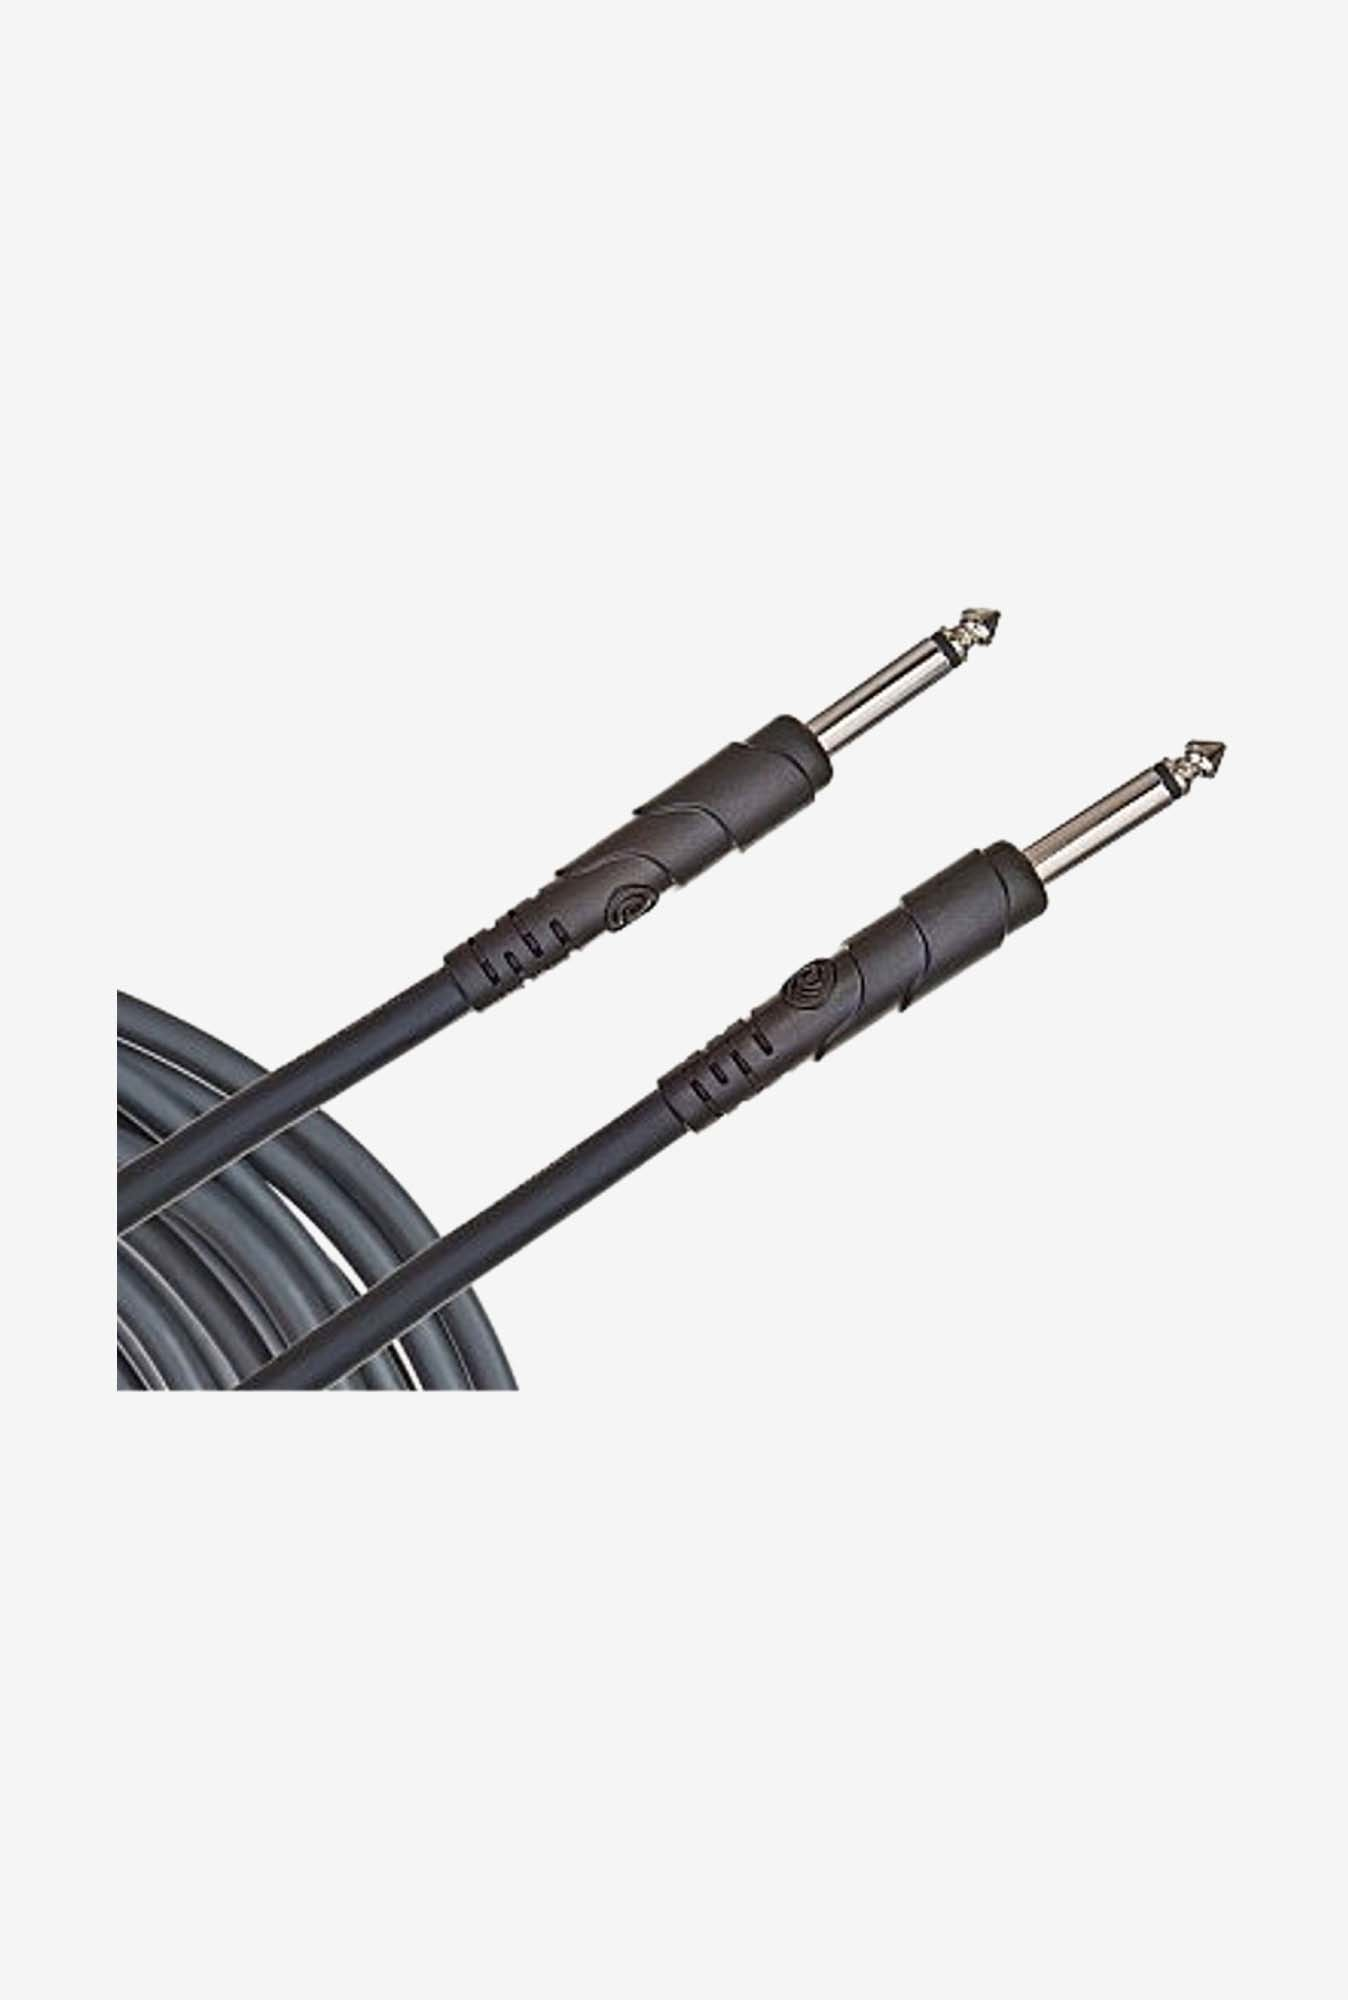 Planet Waves PW-CSPK-25 Classic Series Speaker Cable (Black)